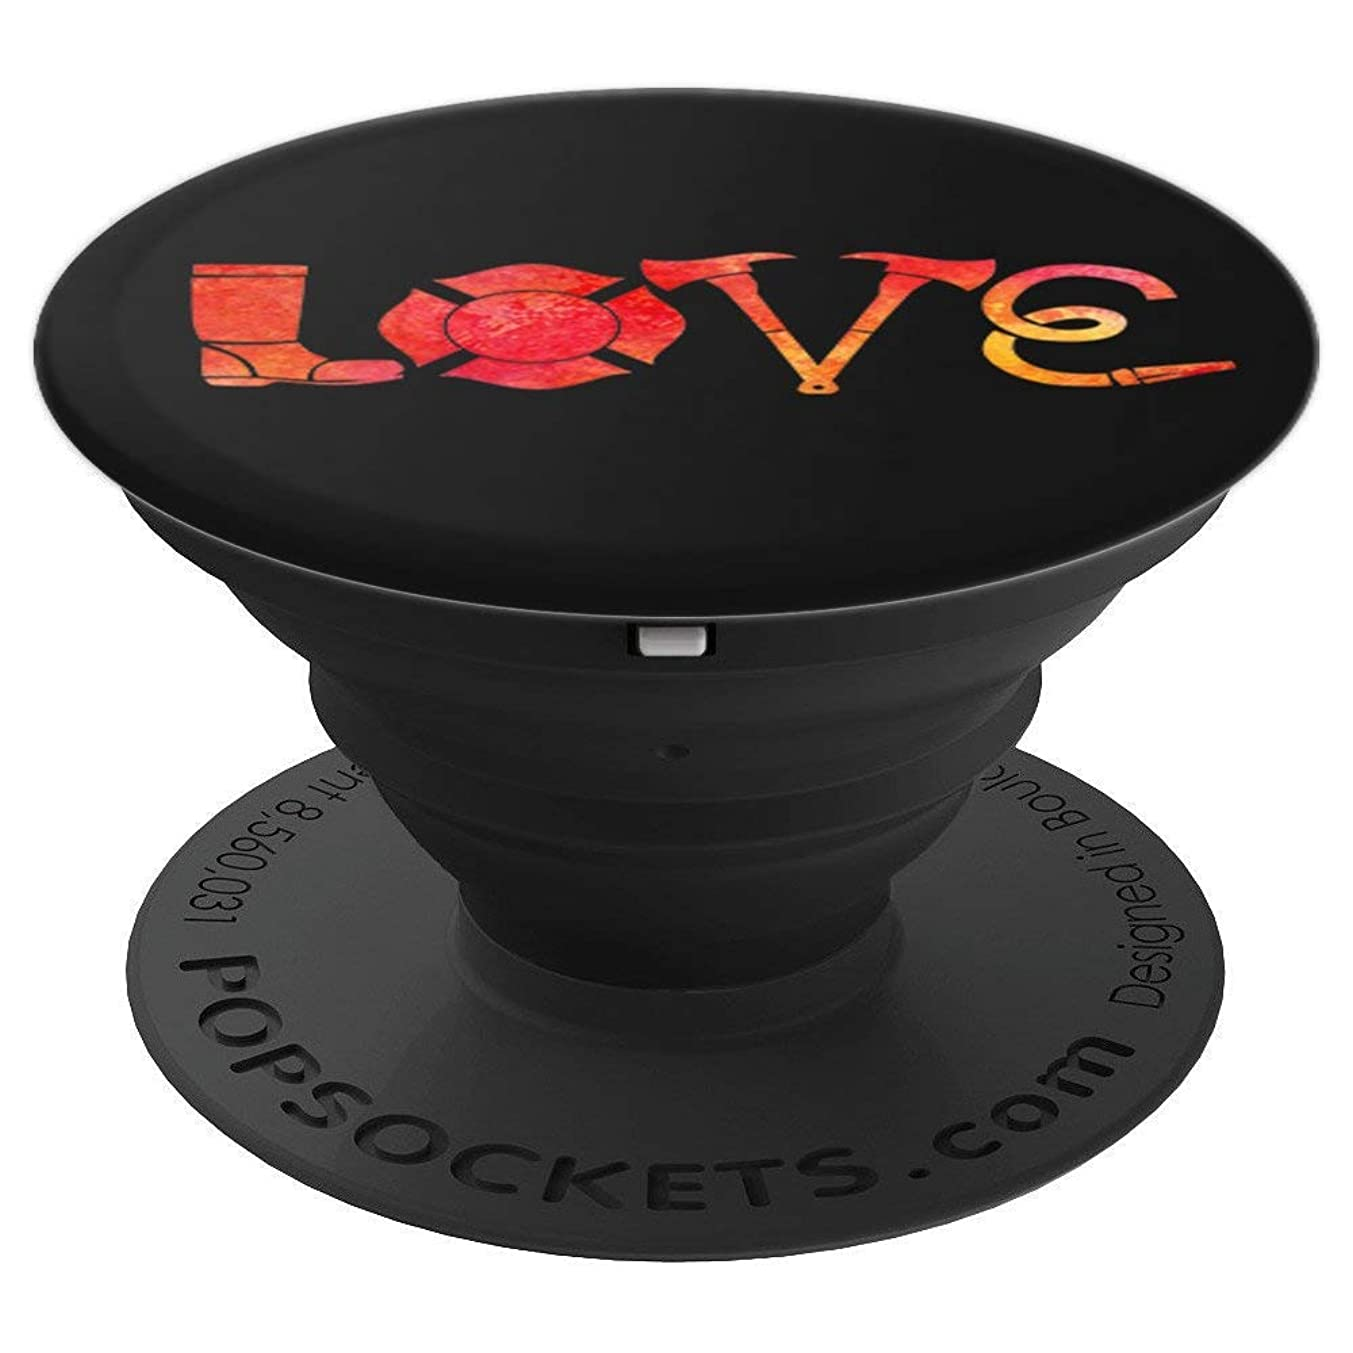 love Firefighter Shirt Firefighter Gifts for men Firefighter - PopSockets Grip and Stand for Phones and Tablets